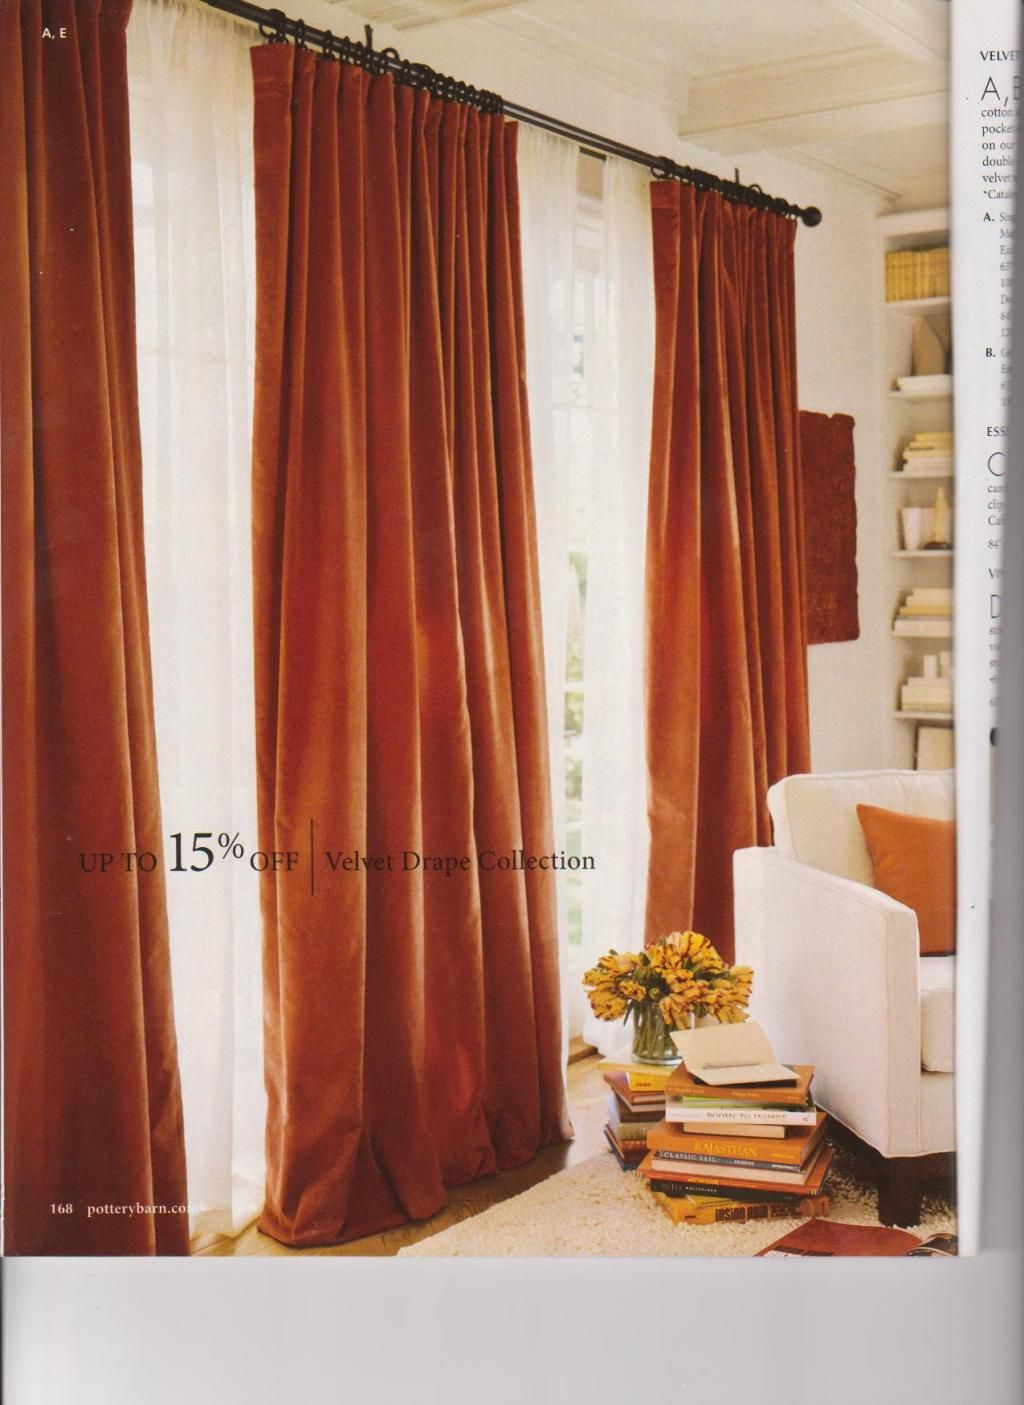 Pottery Barn Offers This Great Velvet Drape In A Color They Call